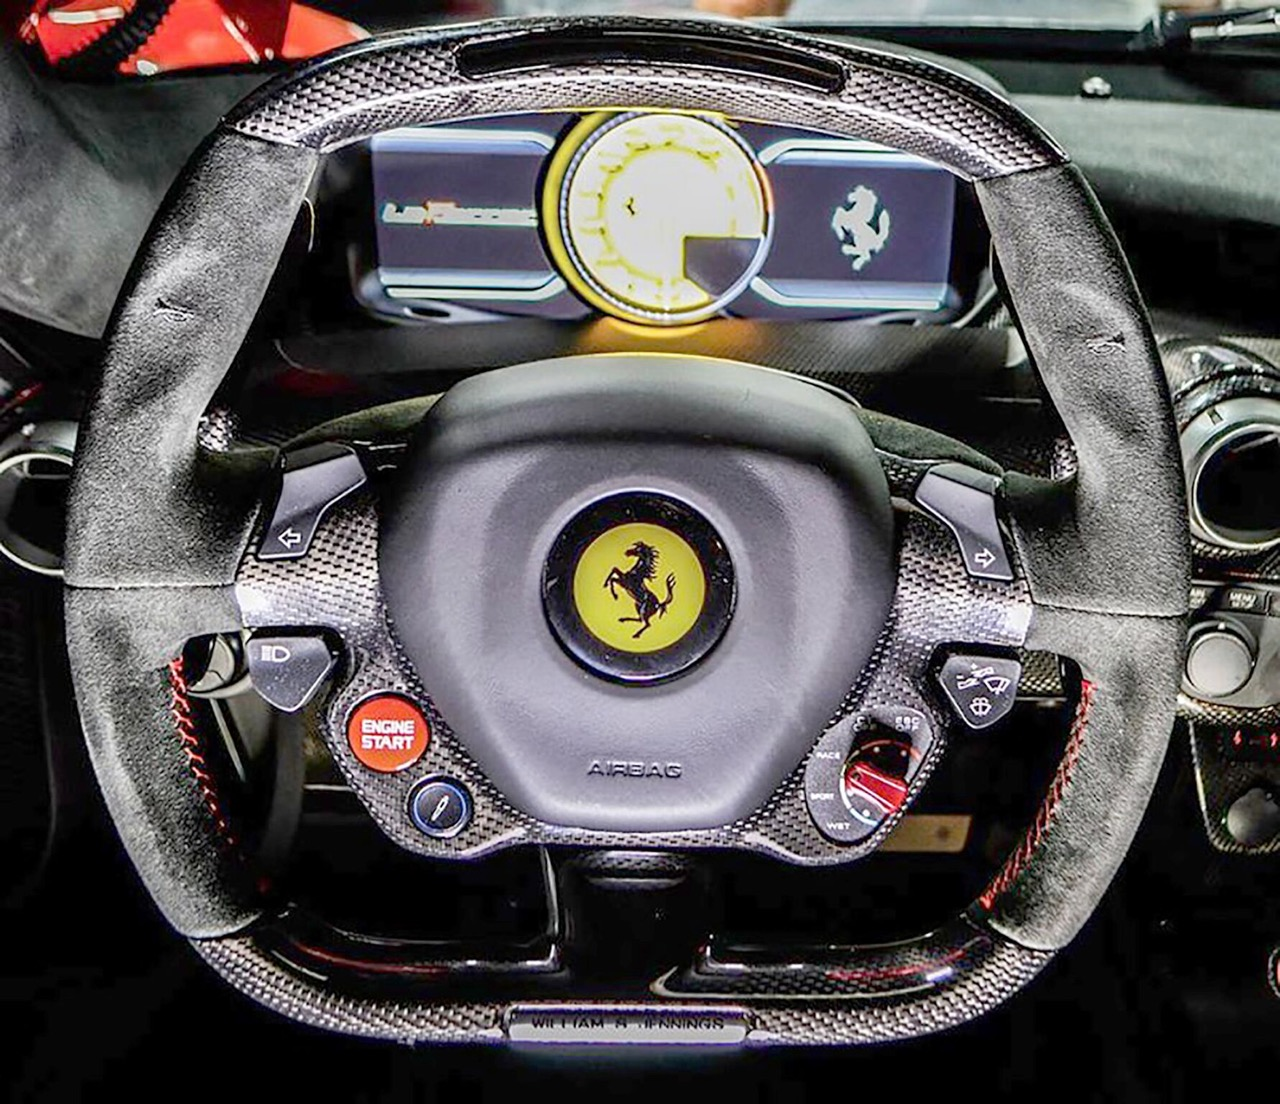 Steering wheel puts controls at driver's fingertips